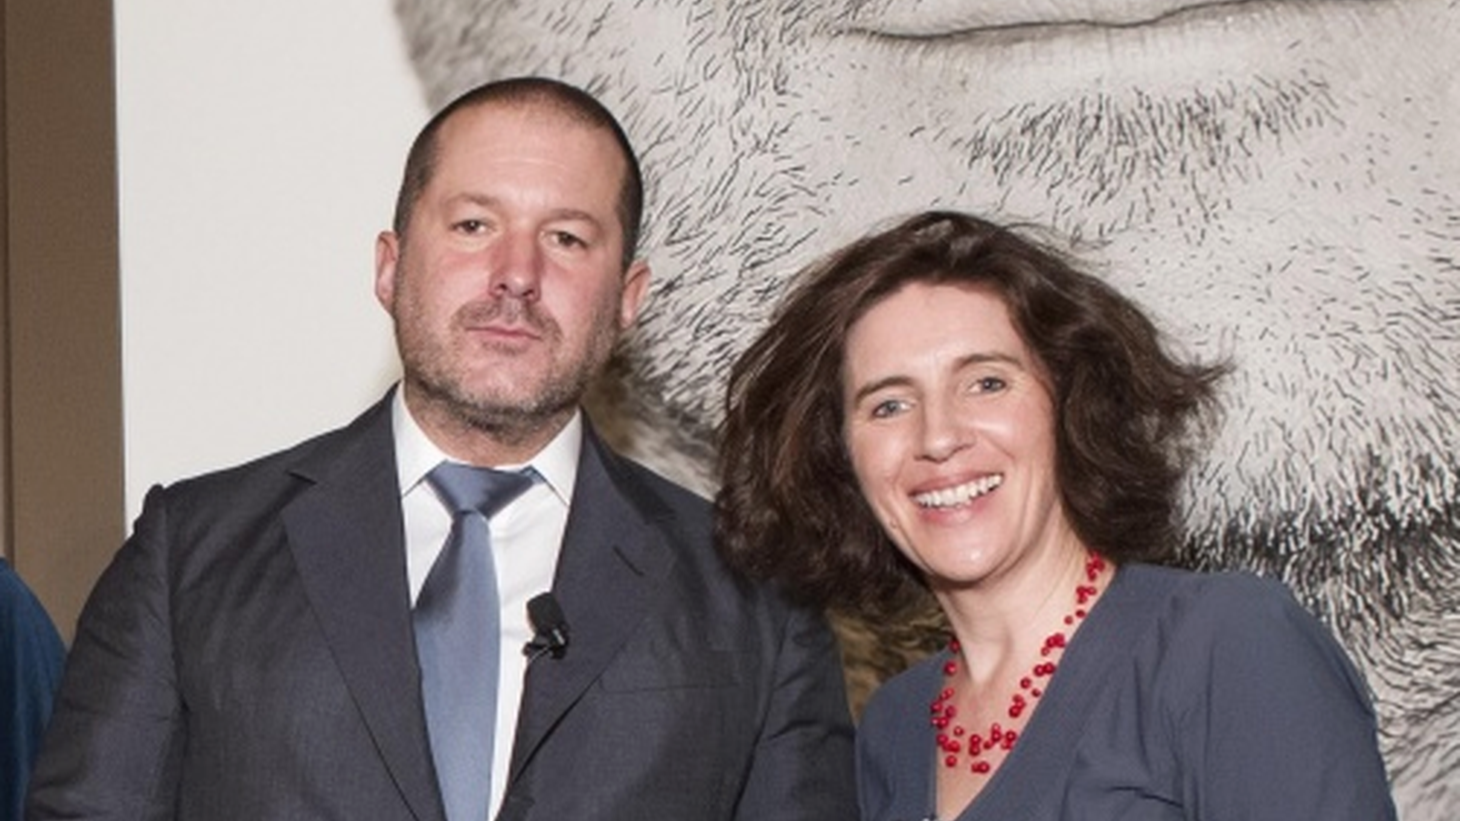 DnA's Frances Anderton, right, stands with her stunningly successful countryman Sir Jony Ive, under a blow-up photo of the designer at an SF MOMA fundraiser. (October, 2014)